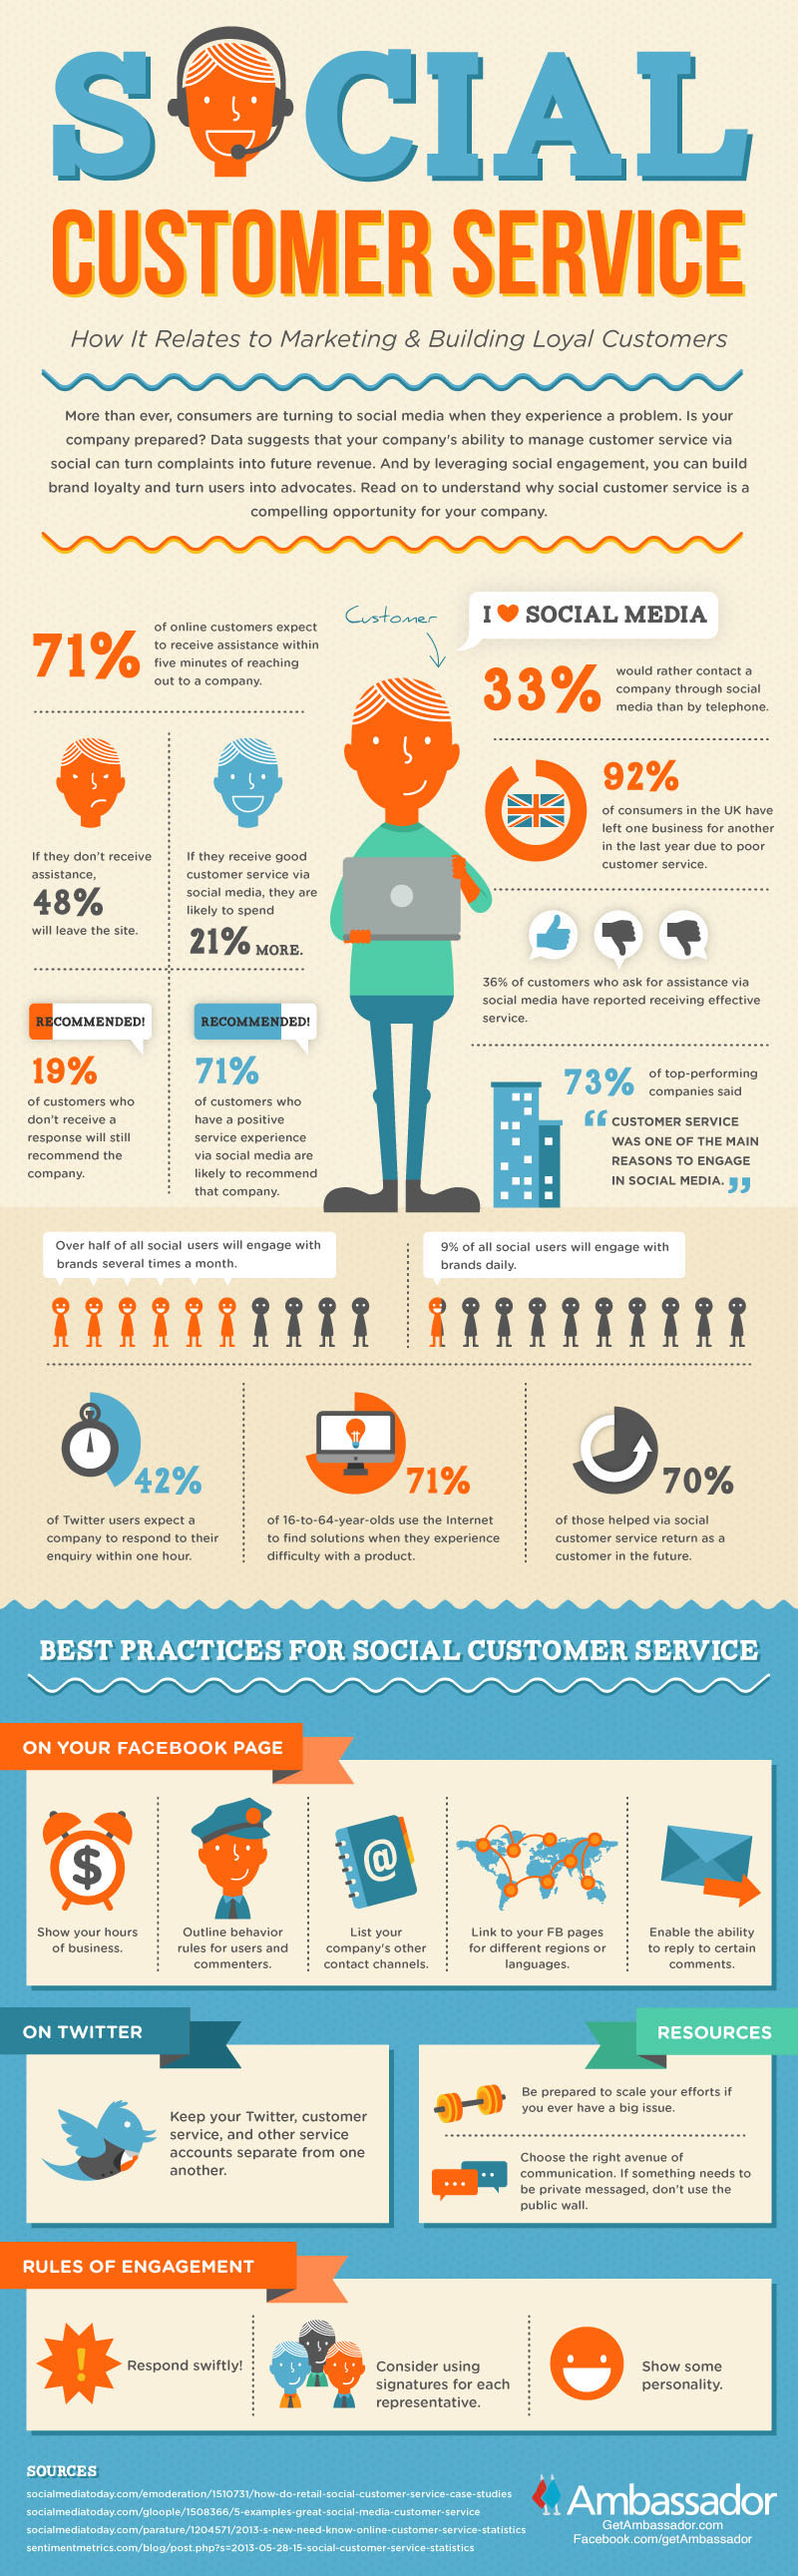 How Social Customer Service Can Help Your Business